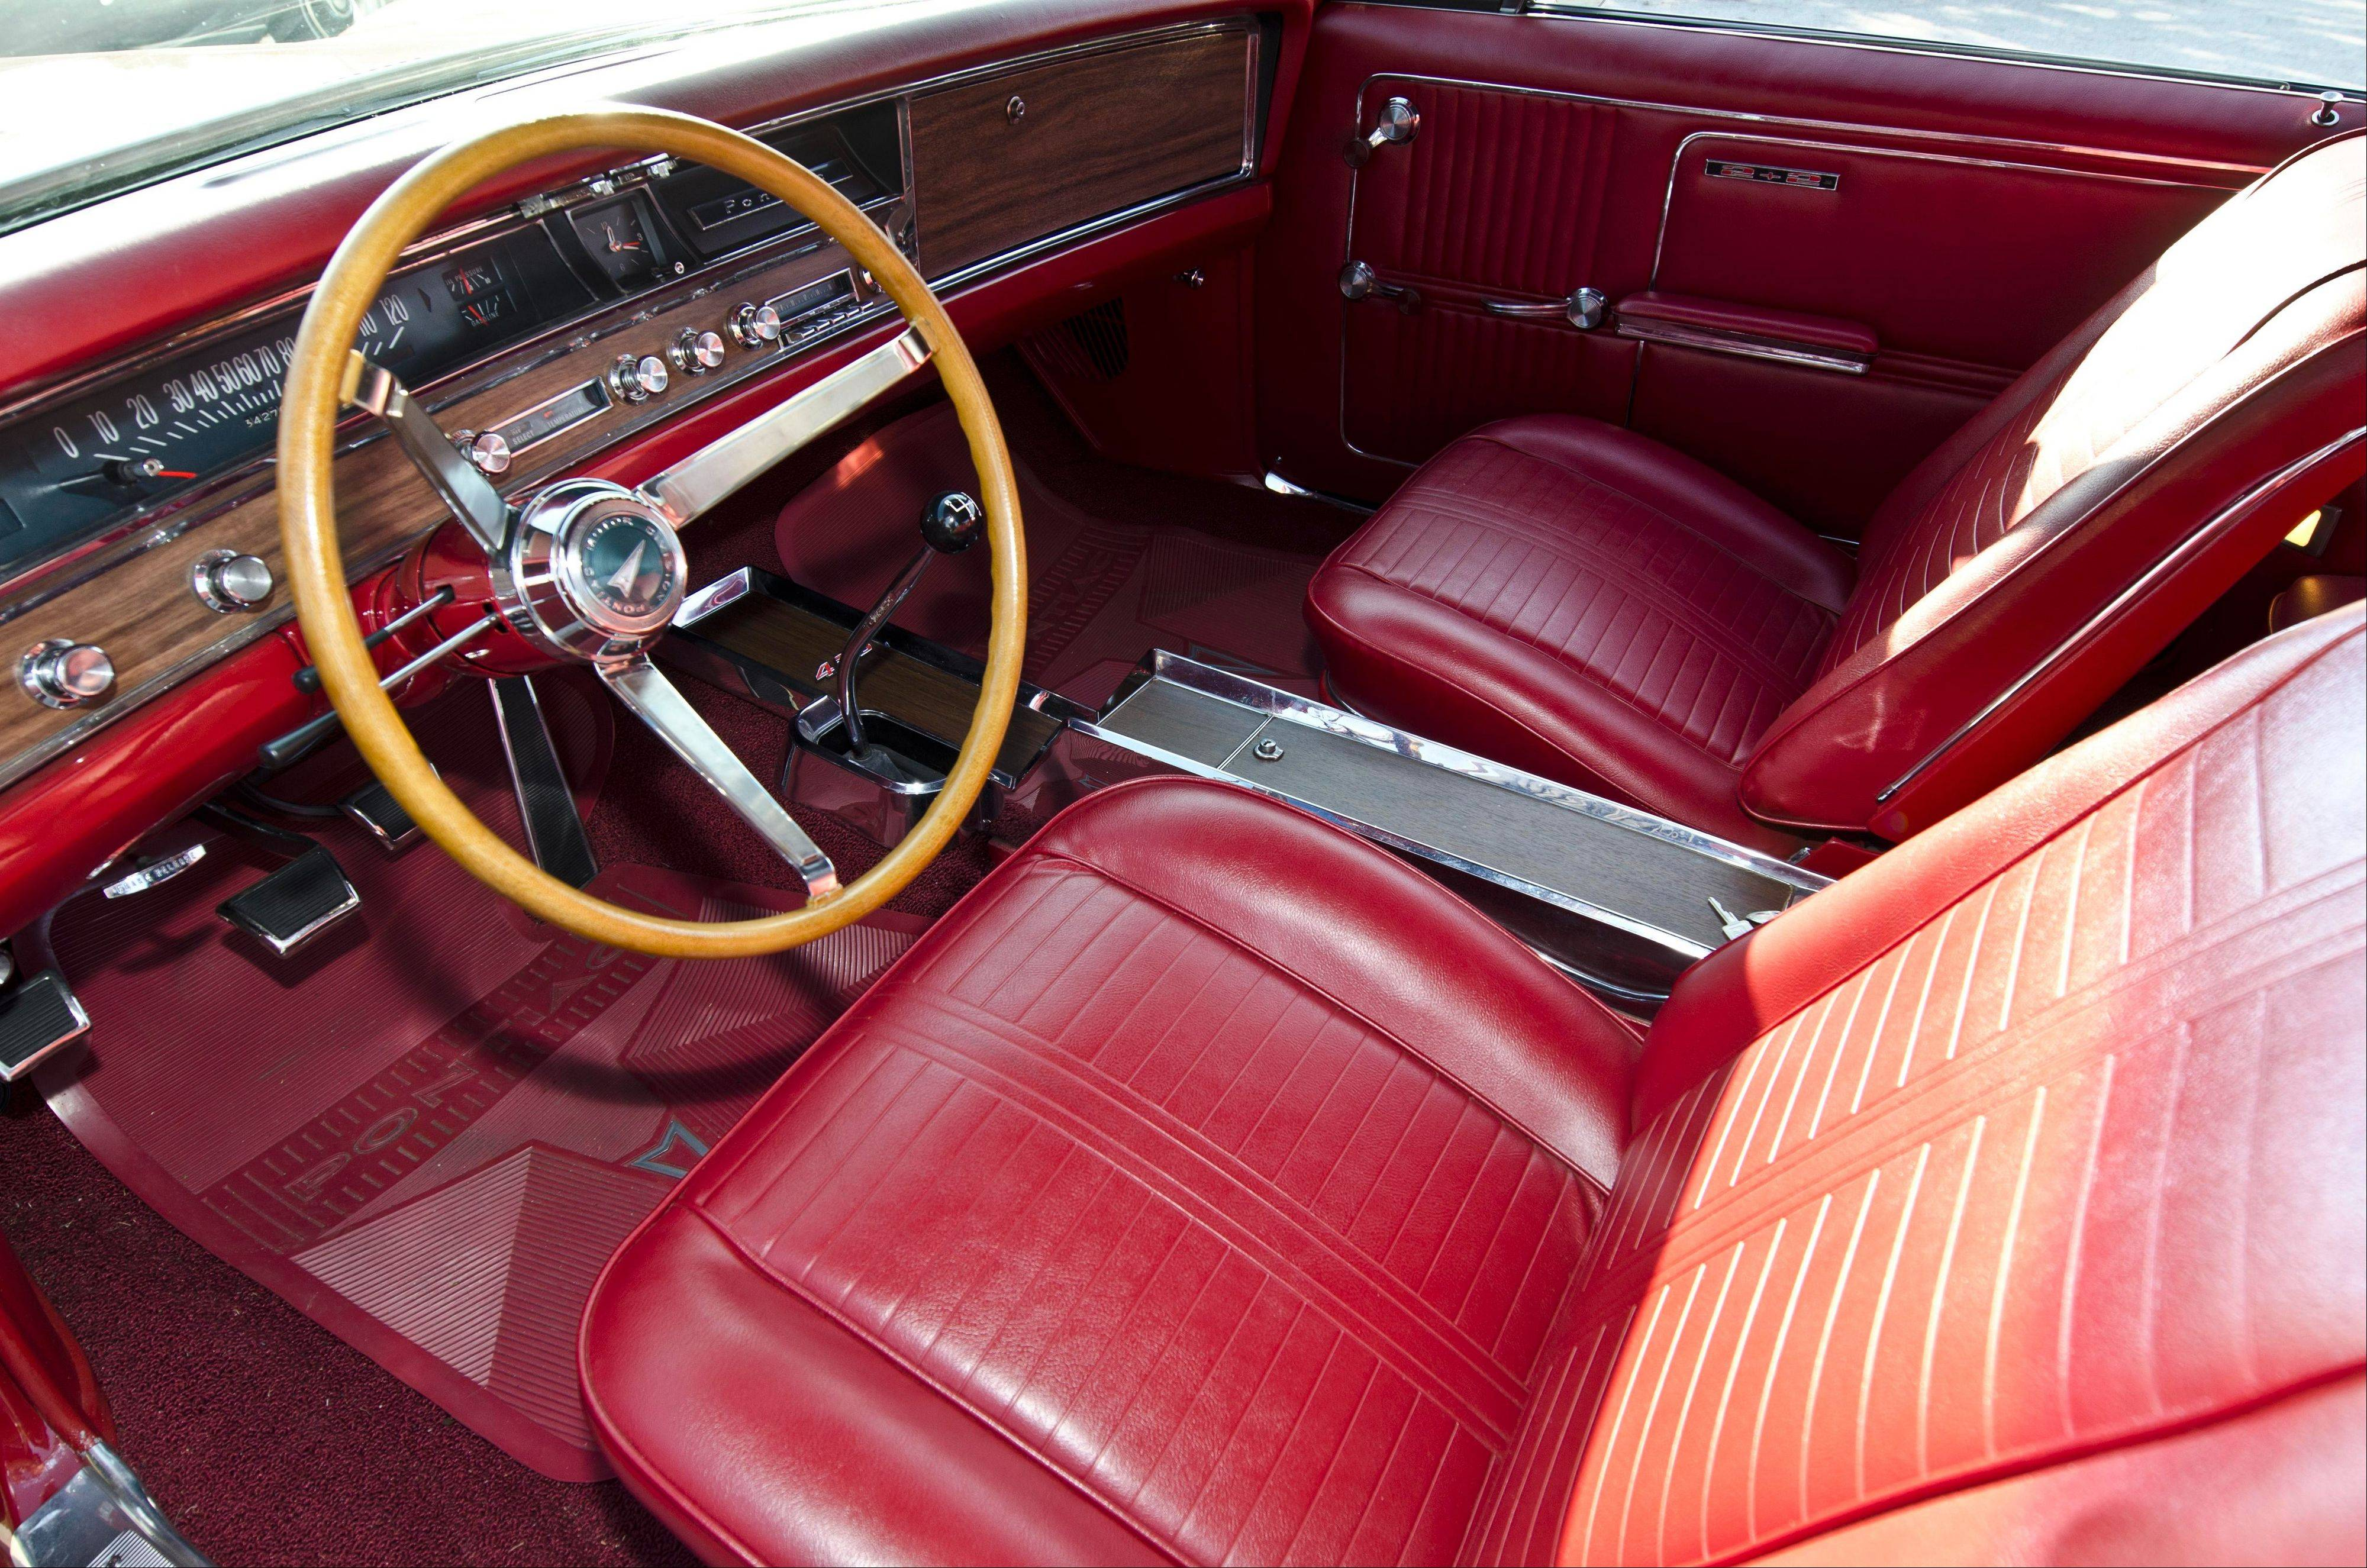 Boris, the third owner of this red 1967 Pontiac convertible, has been driving this 2+2 since 2005.